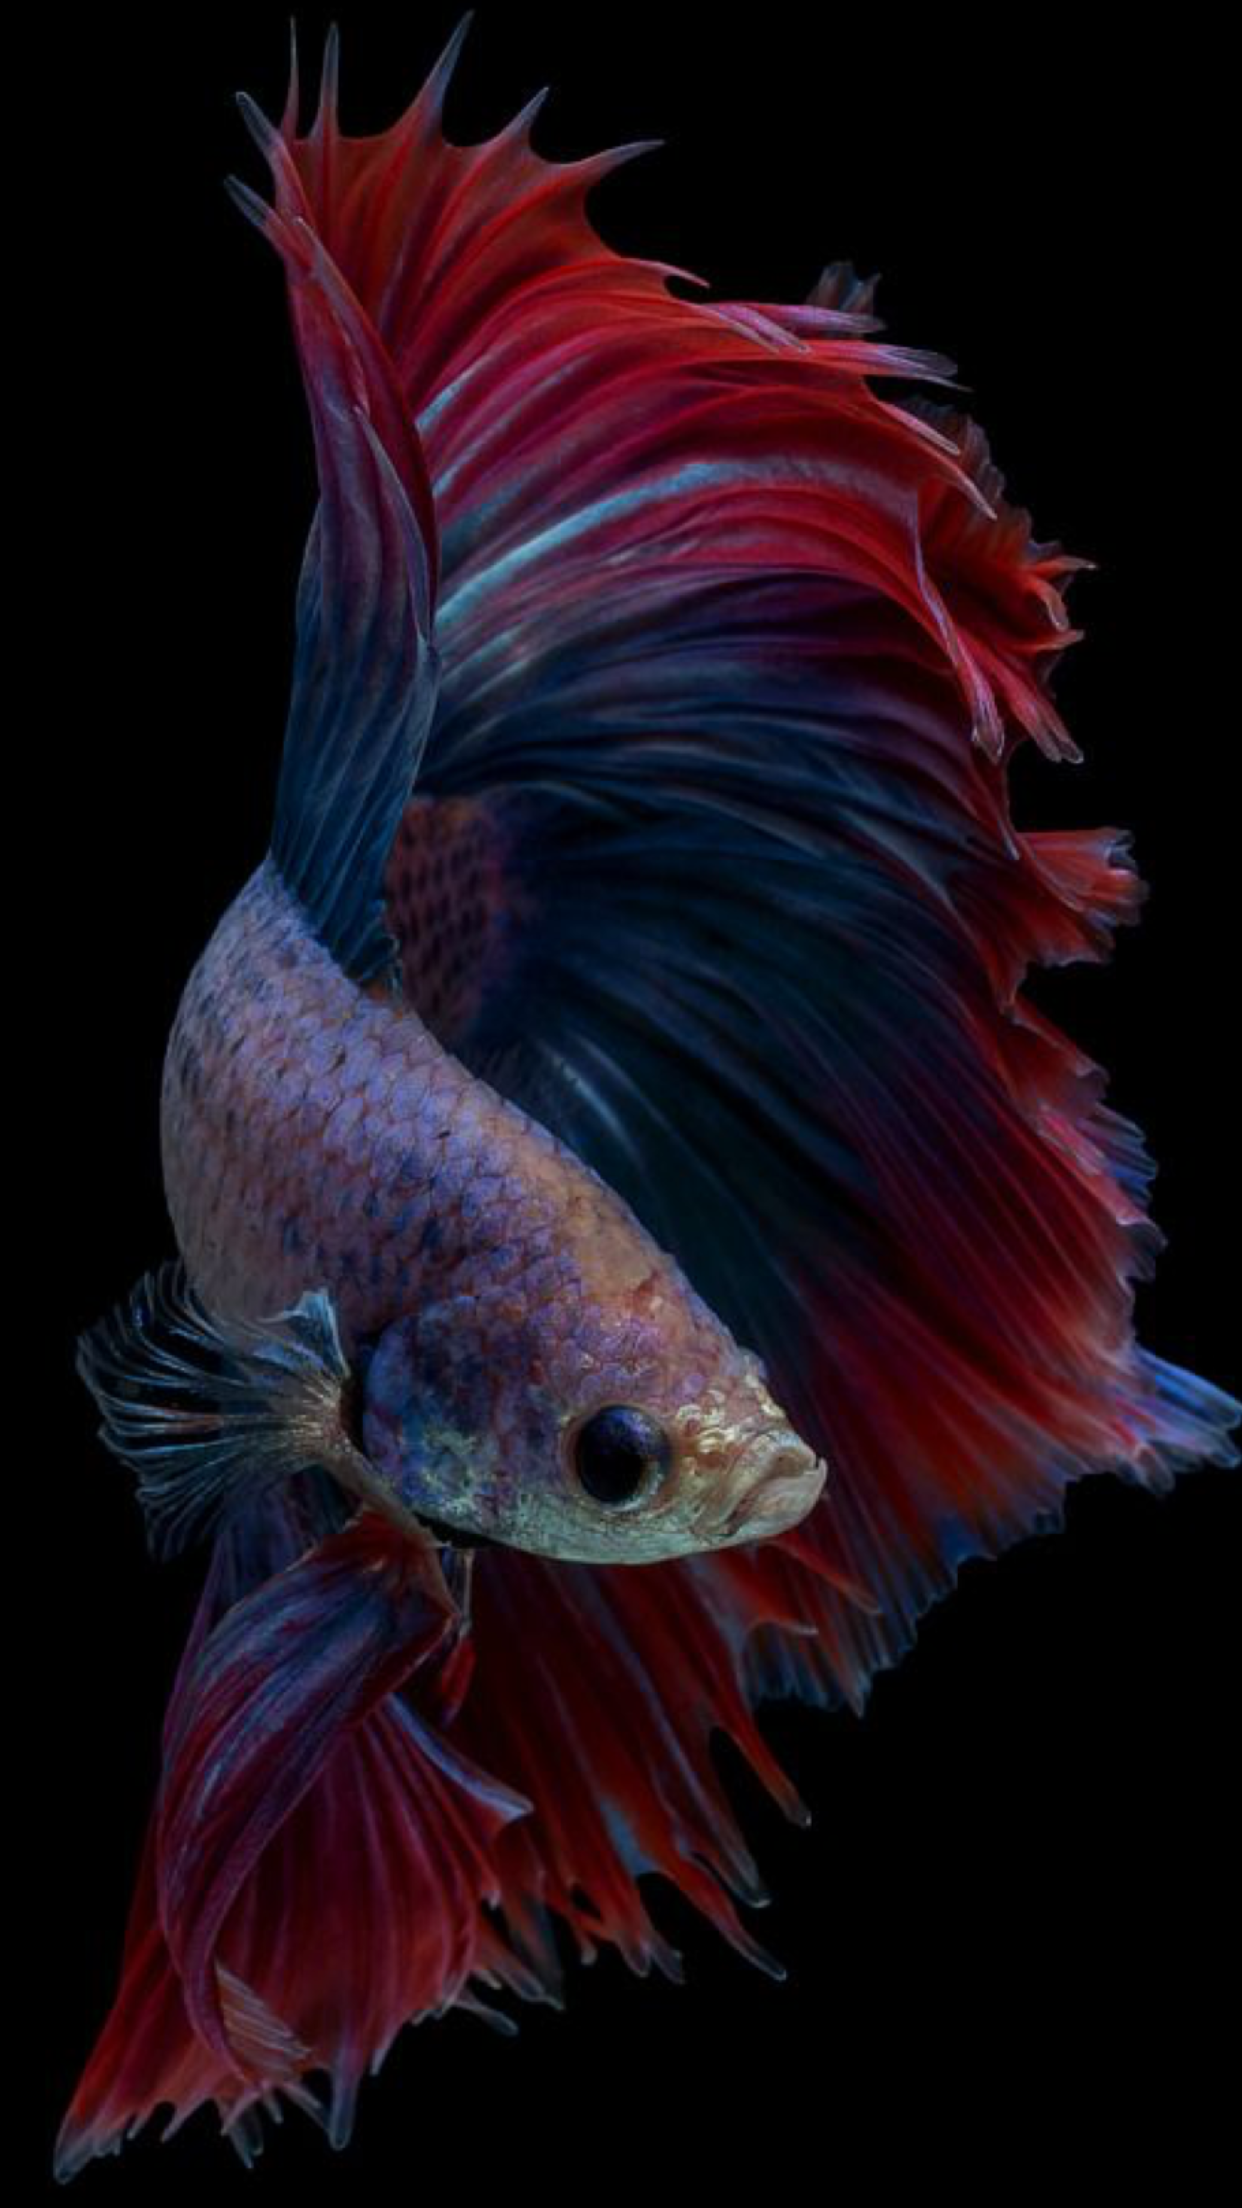 Pin By Peak Hora On Fish Photography Betta Fish Fish Betta